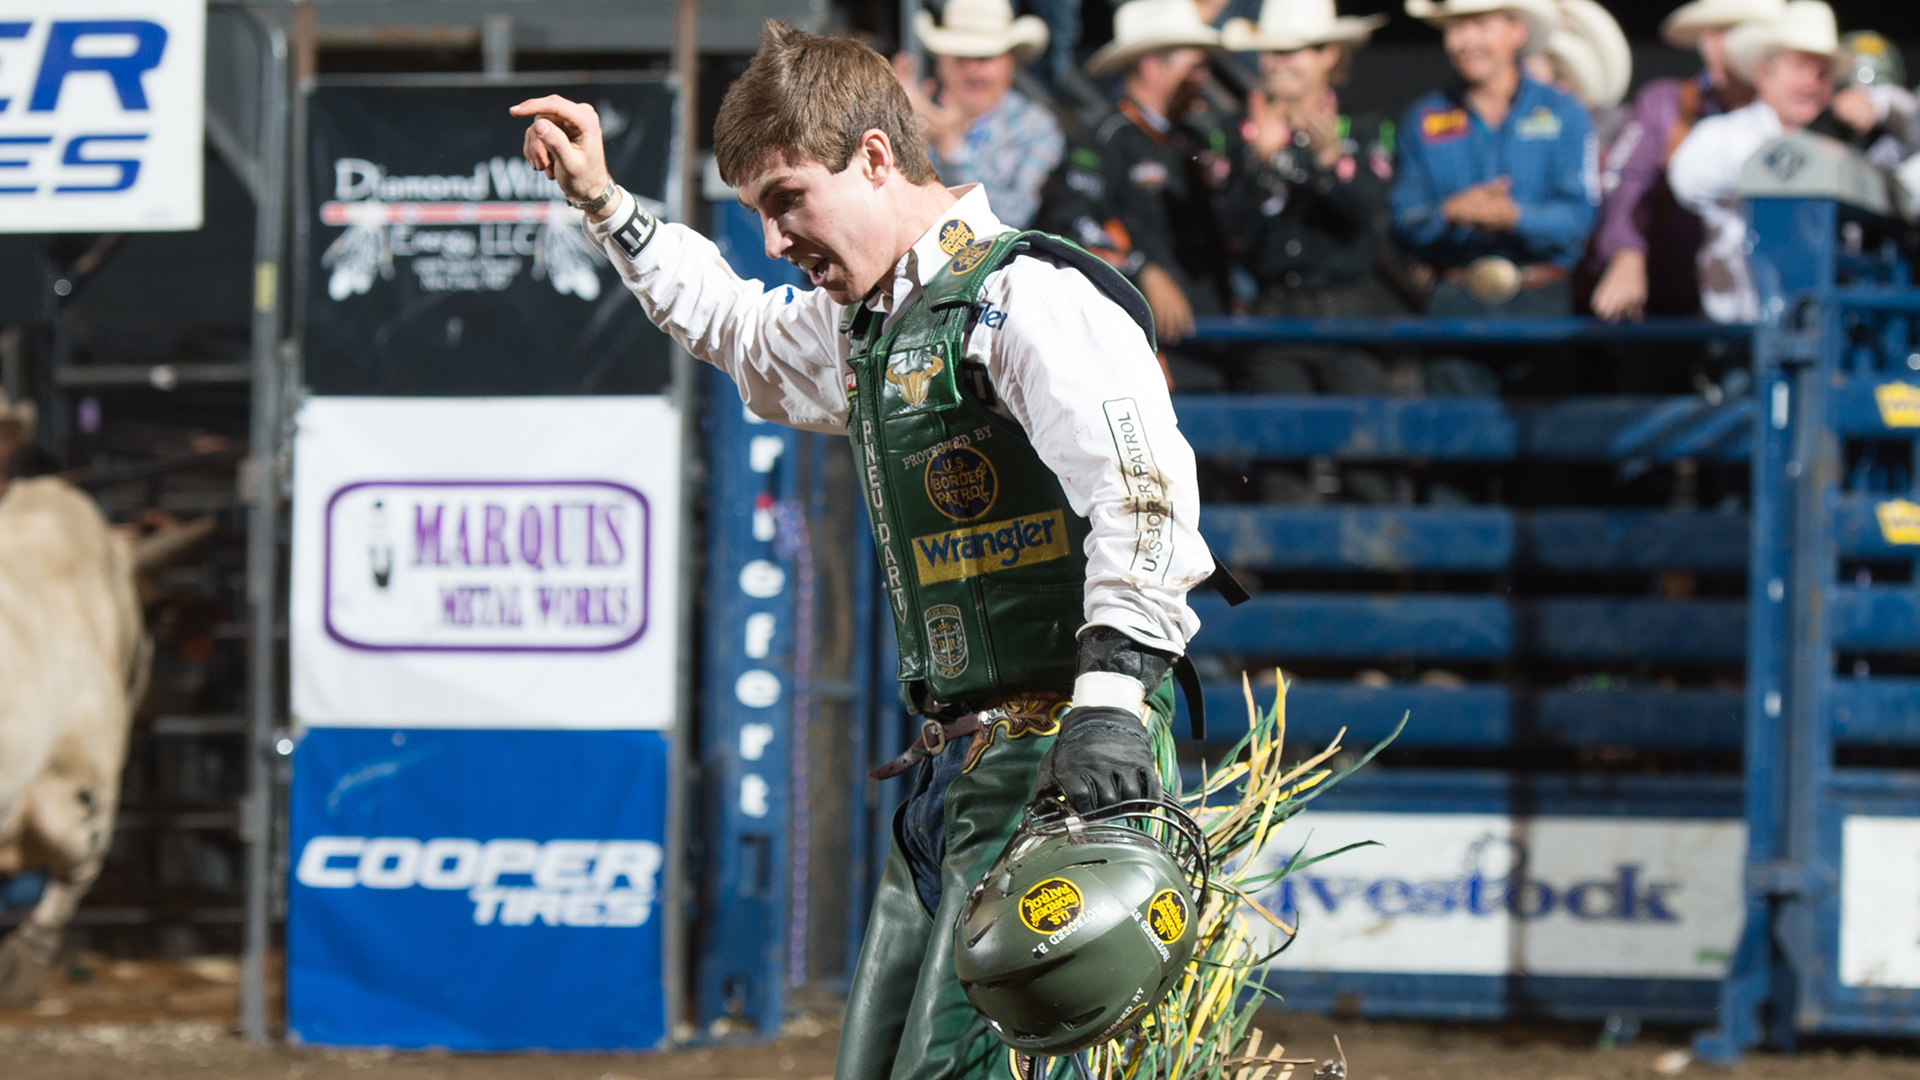 Lockwood edges Outlaw for Pool A Calgary Stampede victory